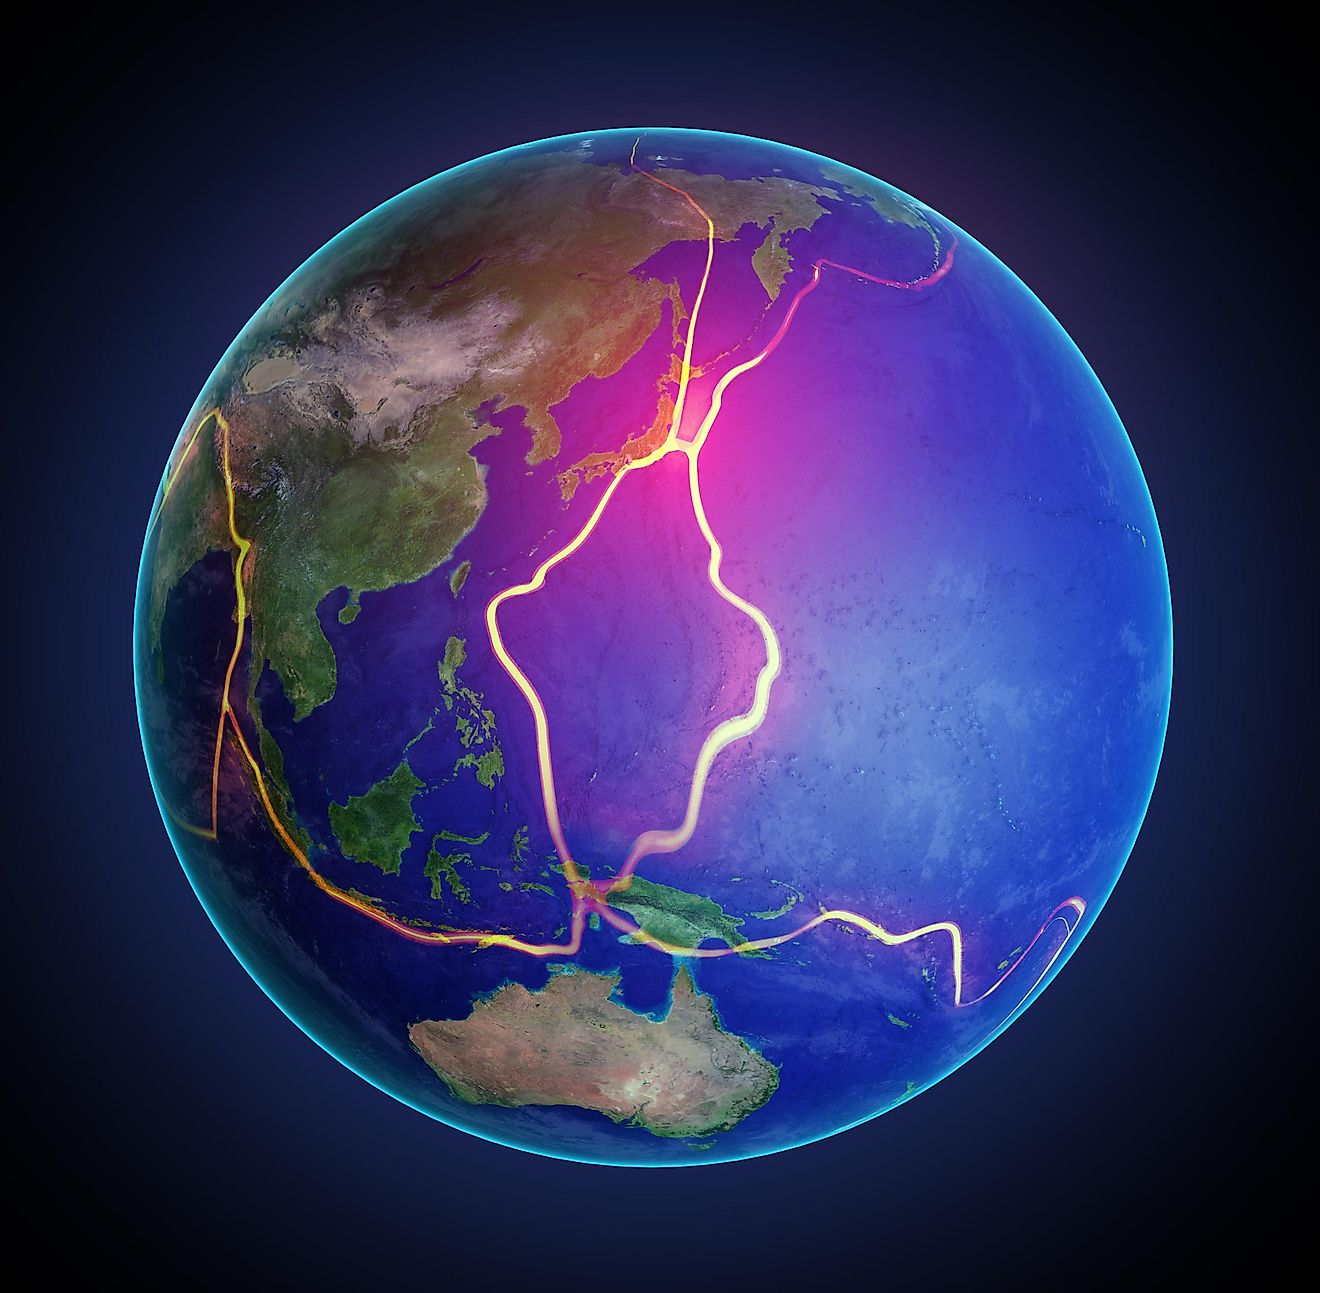 In 1915, Alfred Wegener presented the theory of continental drift but it was not until the 1960s that it was accepted as scientifically true.